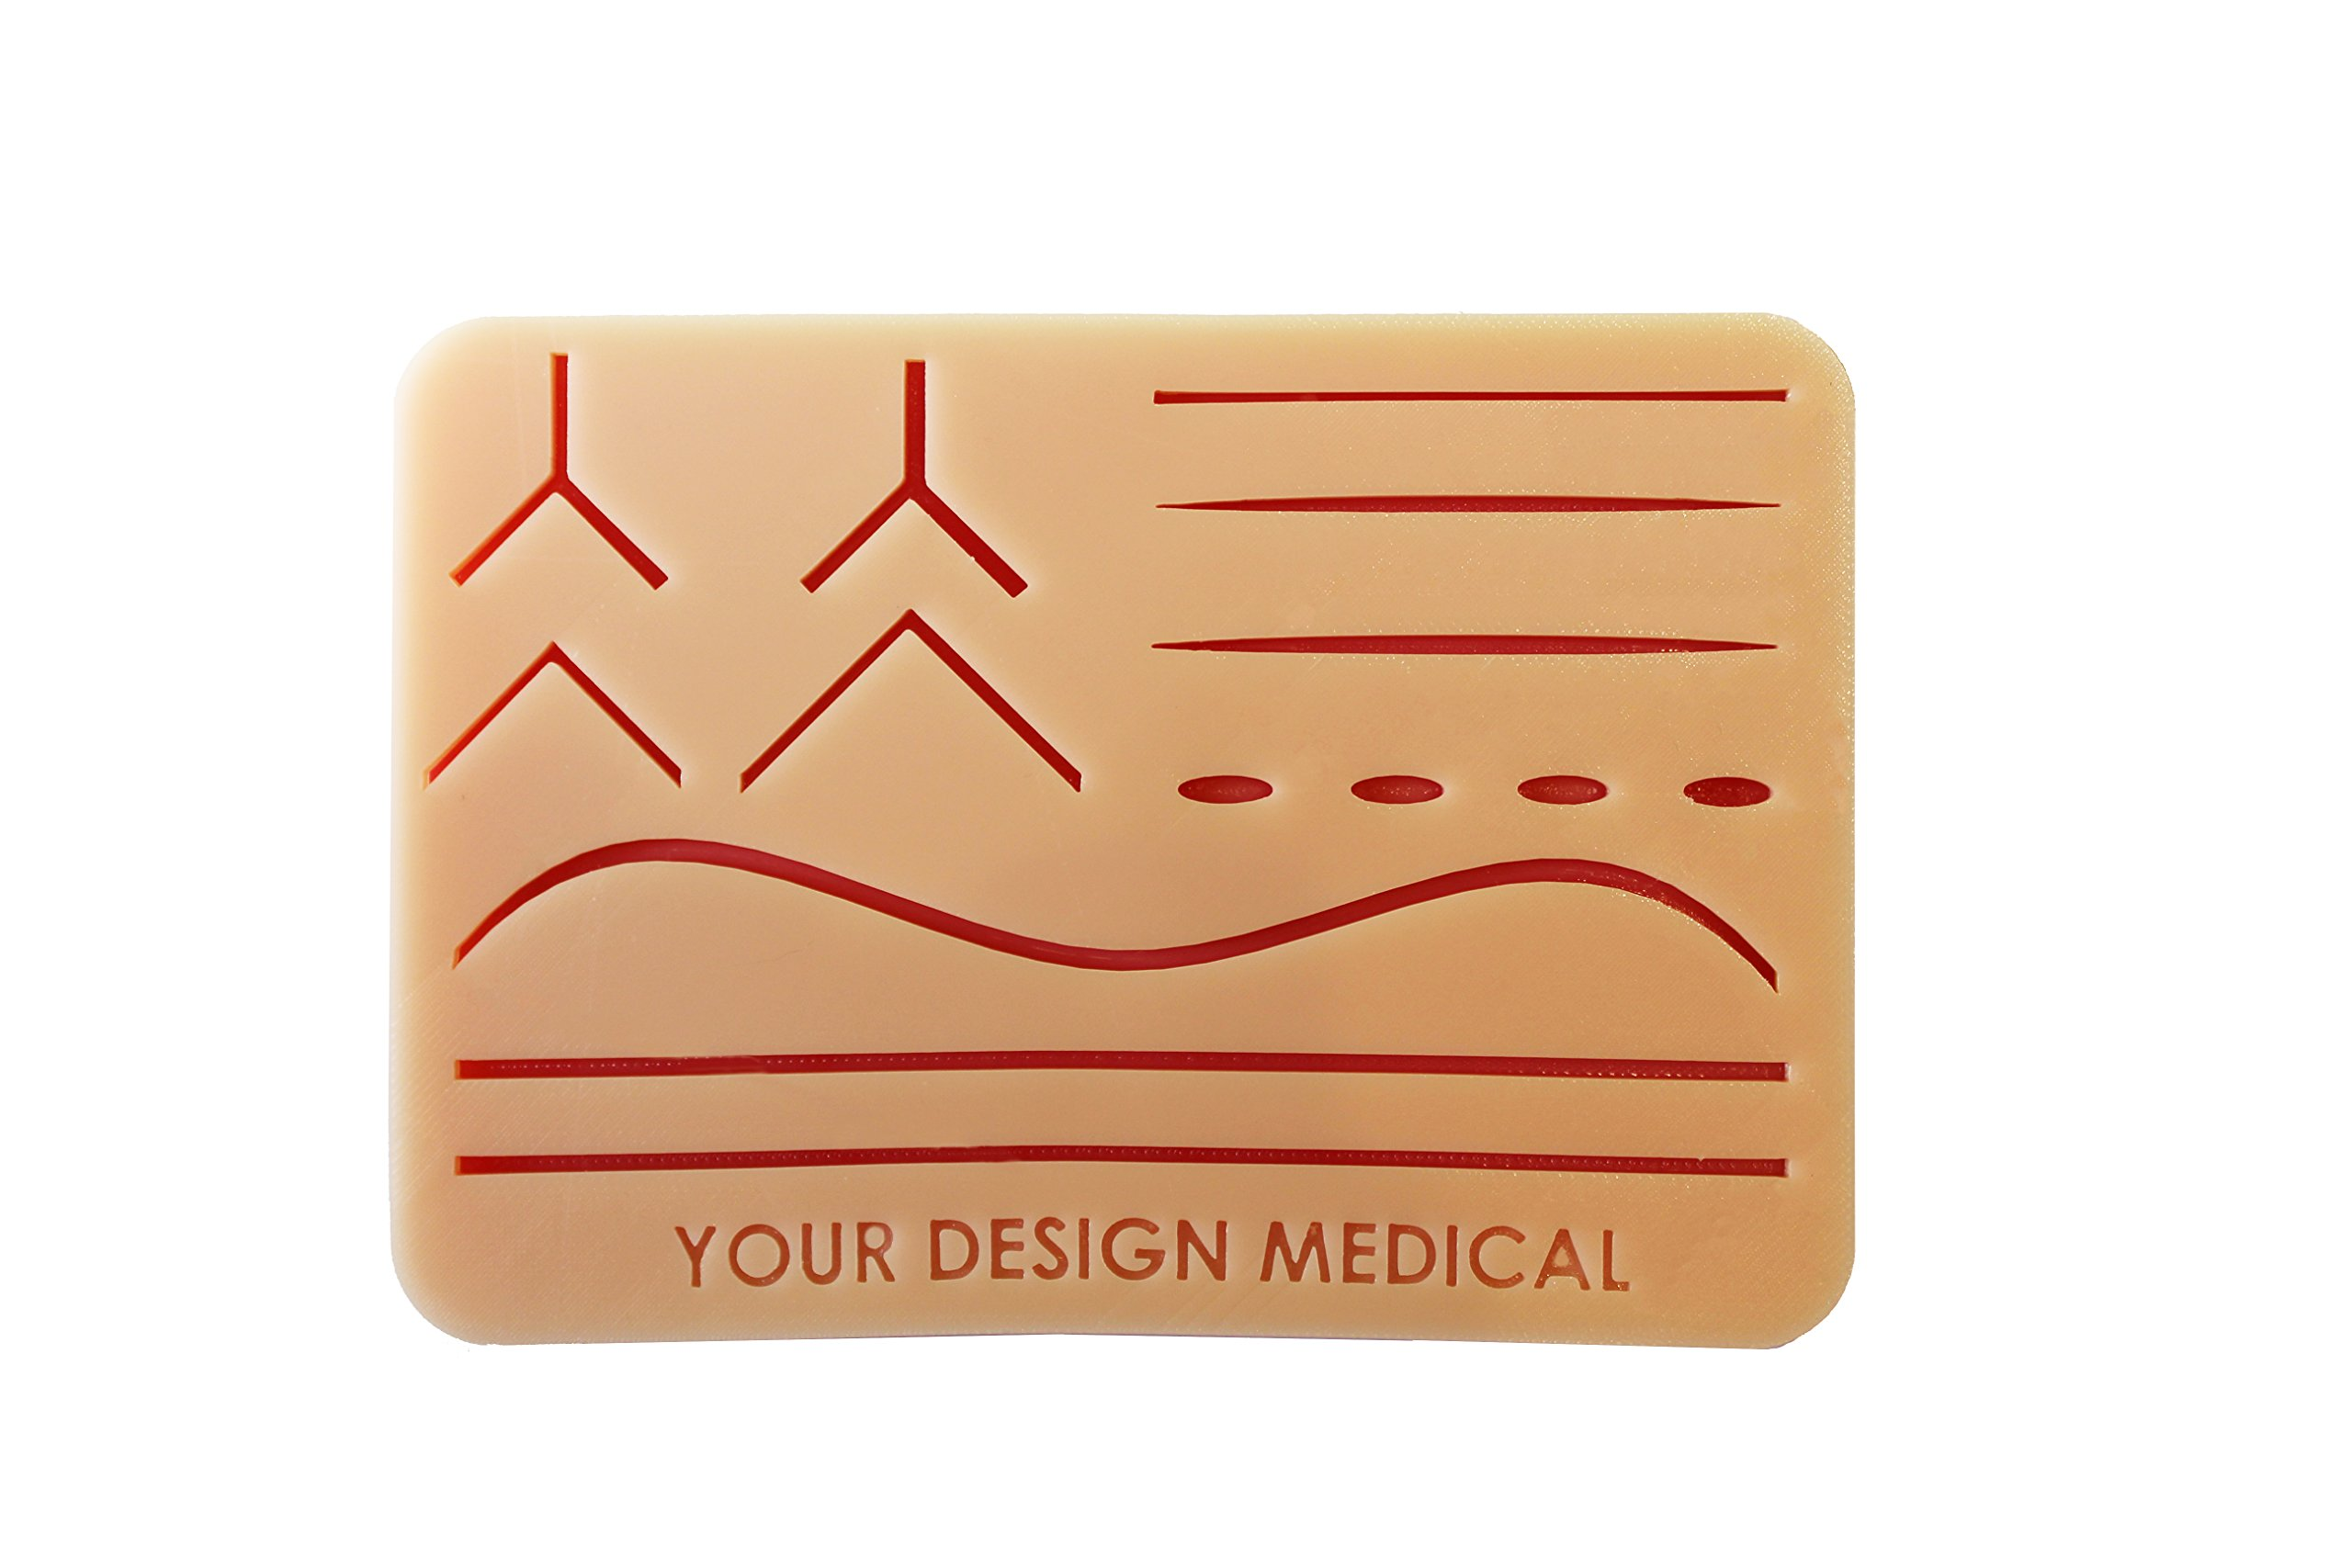 Your Design Medical – Large Durable 3-Layer Suture Pad Kit with Wounds for Suturing Practice – Made in Brooklyn, USA – Authentic Brand/Beware Our Knock Offs -– Includes Free Educational Material